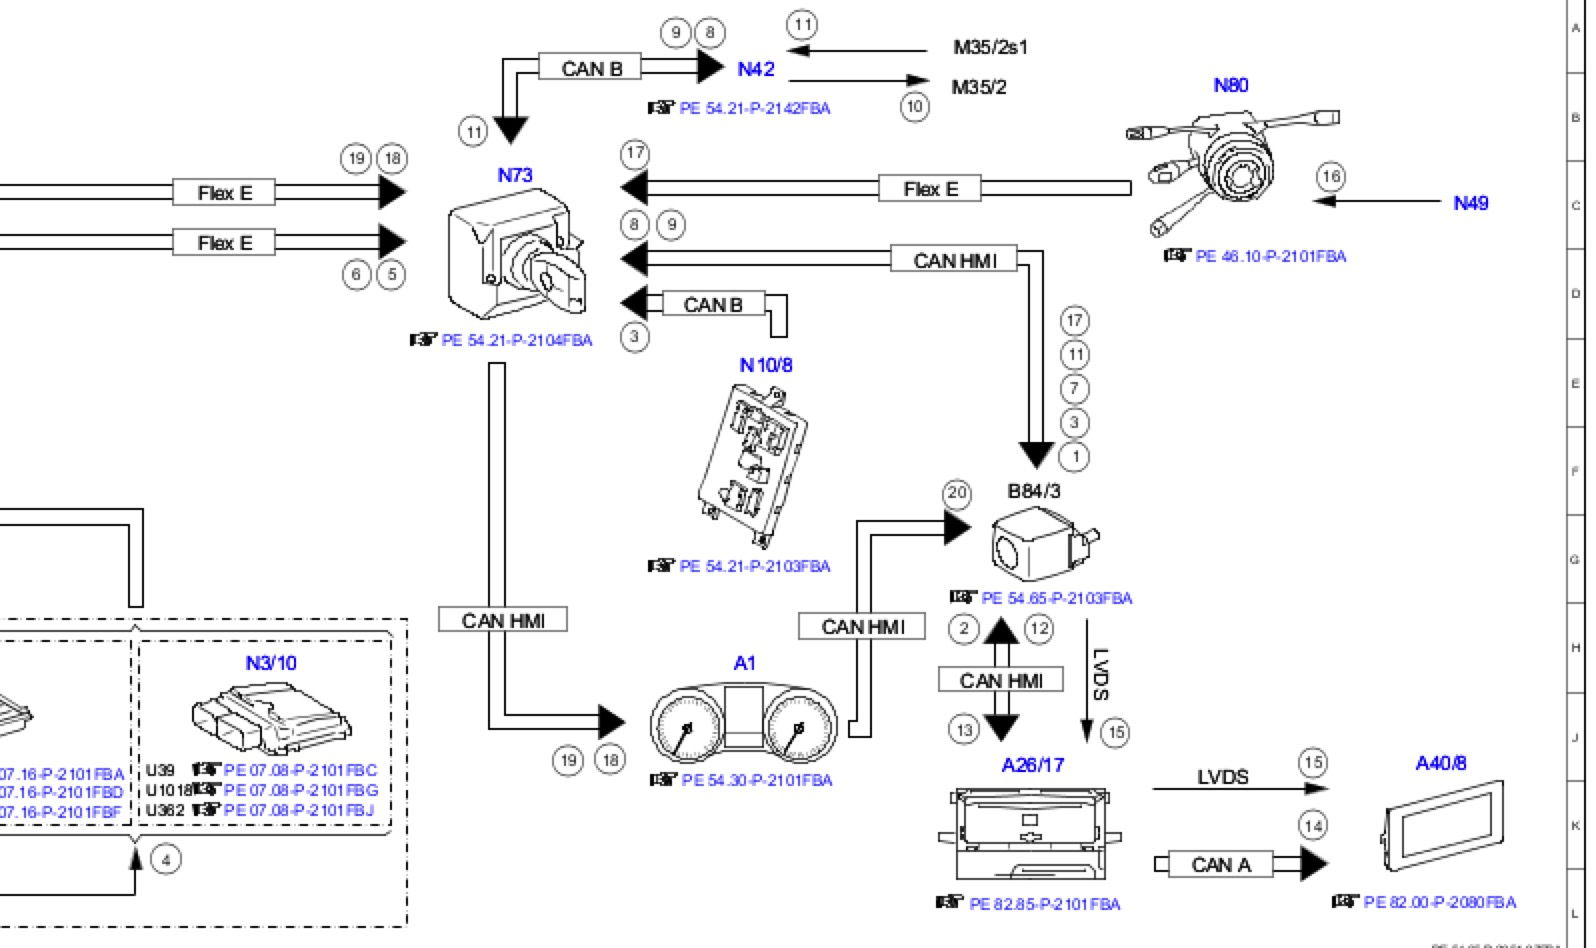 Bendix Trailer Abs Wiring Diagram in addition 2011 Detroit Dd13 Engine Wiring Harness 1146800 further Topic115399 likewise Watch further 100849 Clueless On Tech How Gm Messed Up The Chevrolet Sonic. on detroit wiring diagram